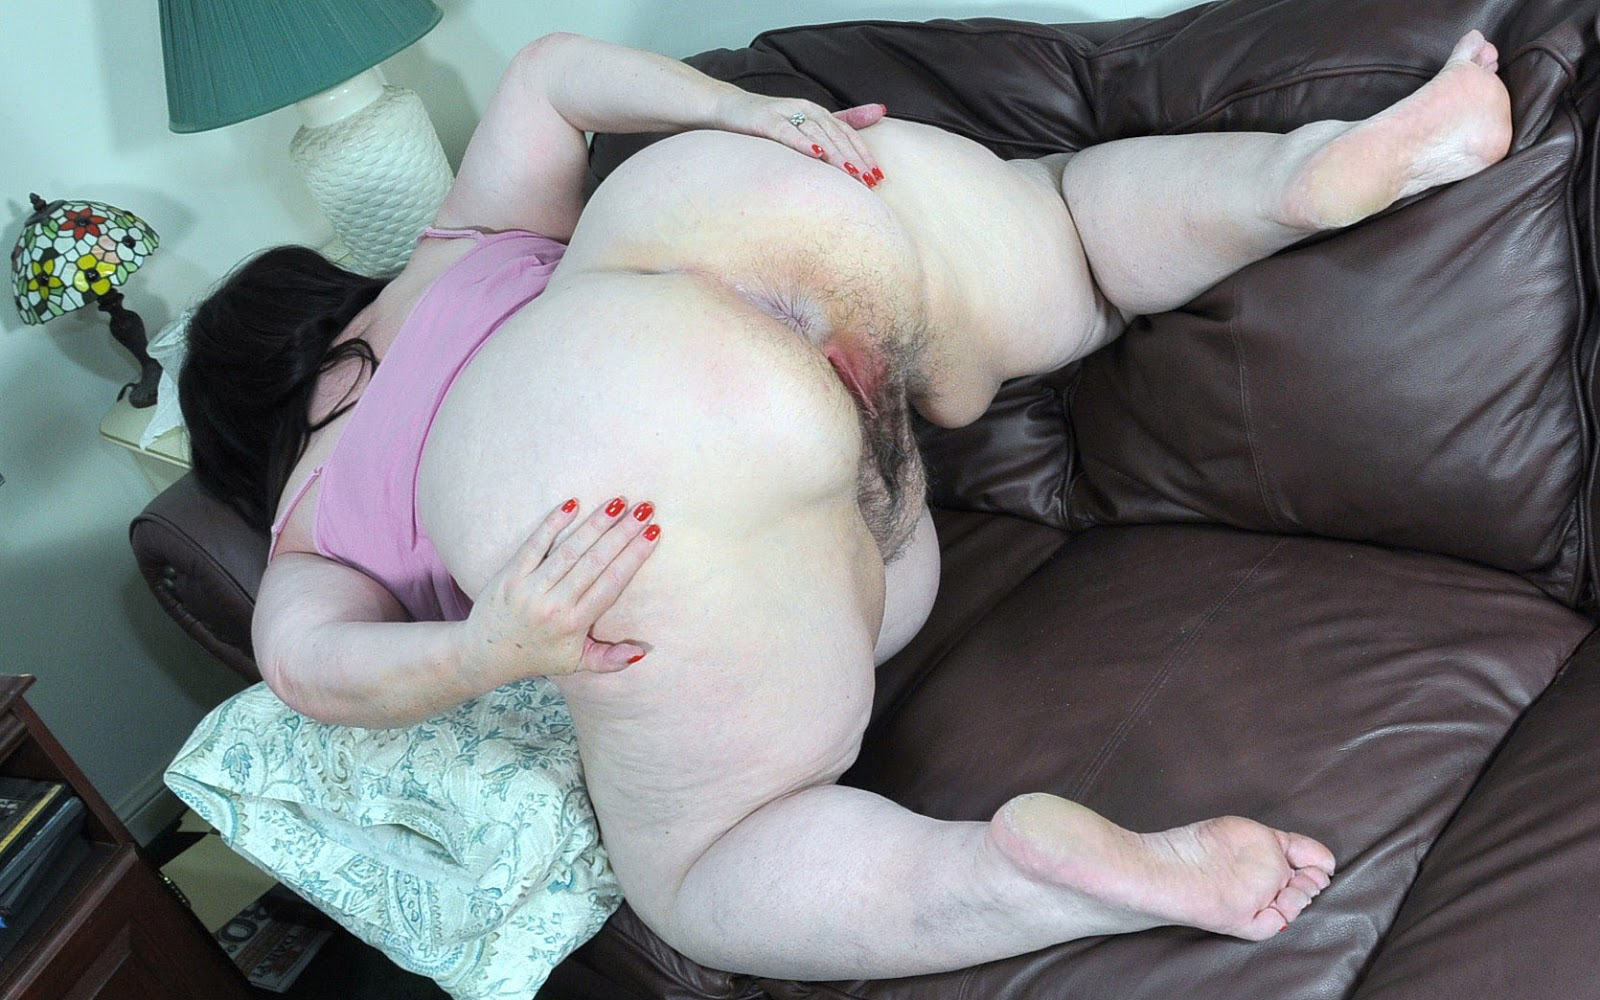 Super hot Bbw chubby fat ass